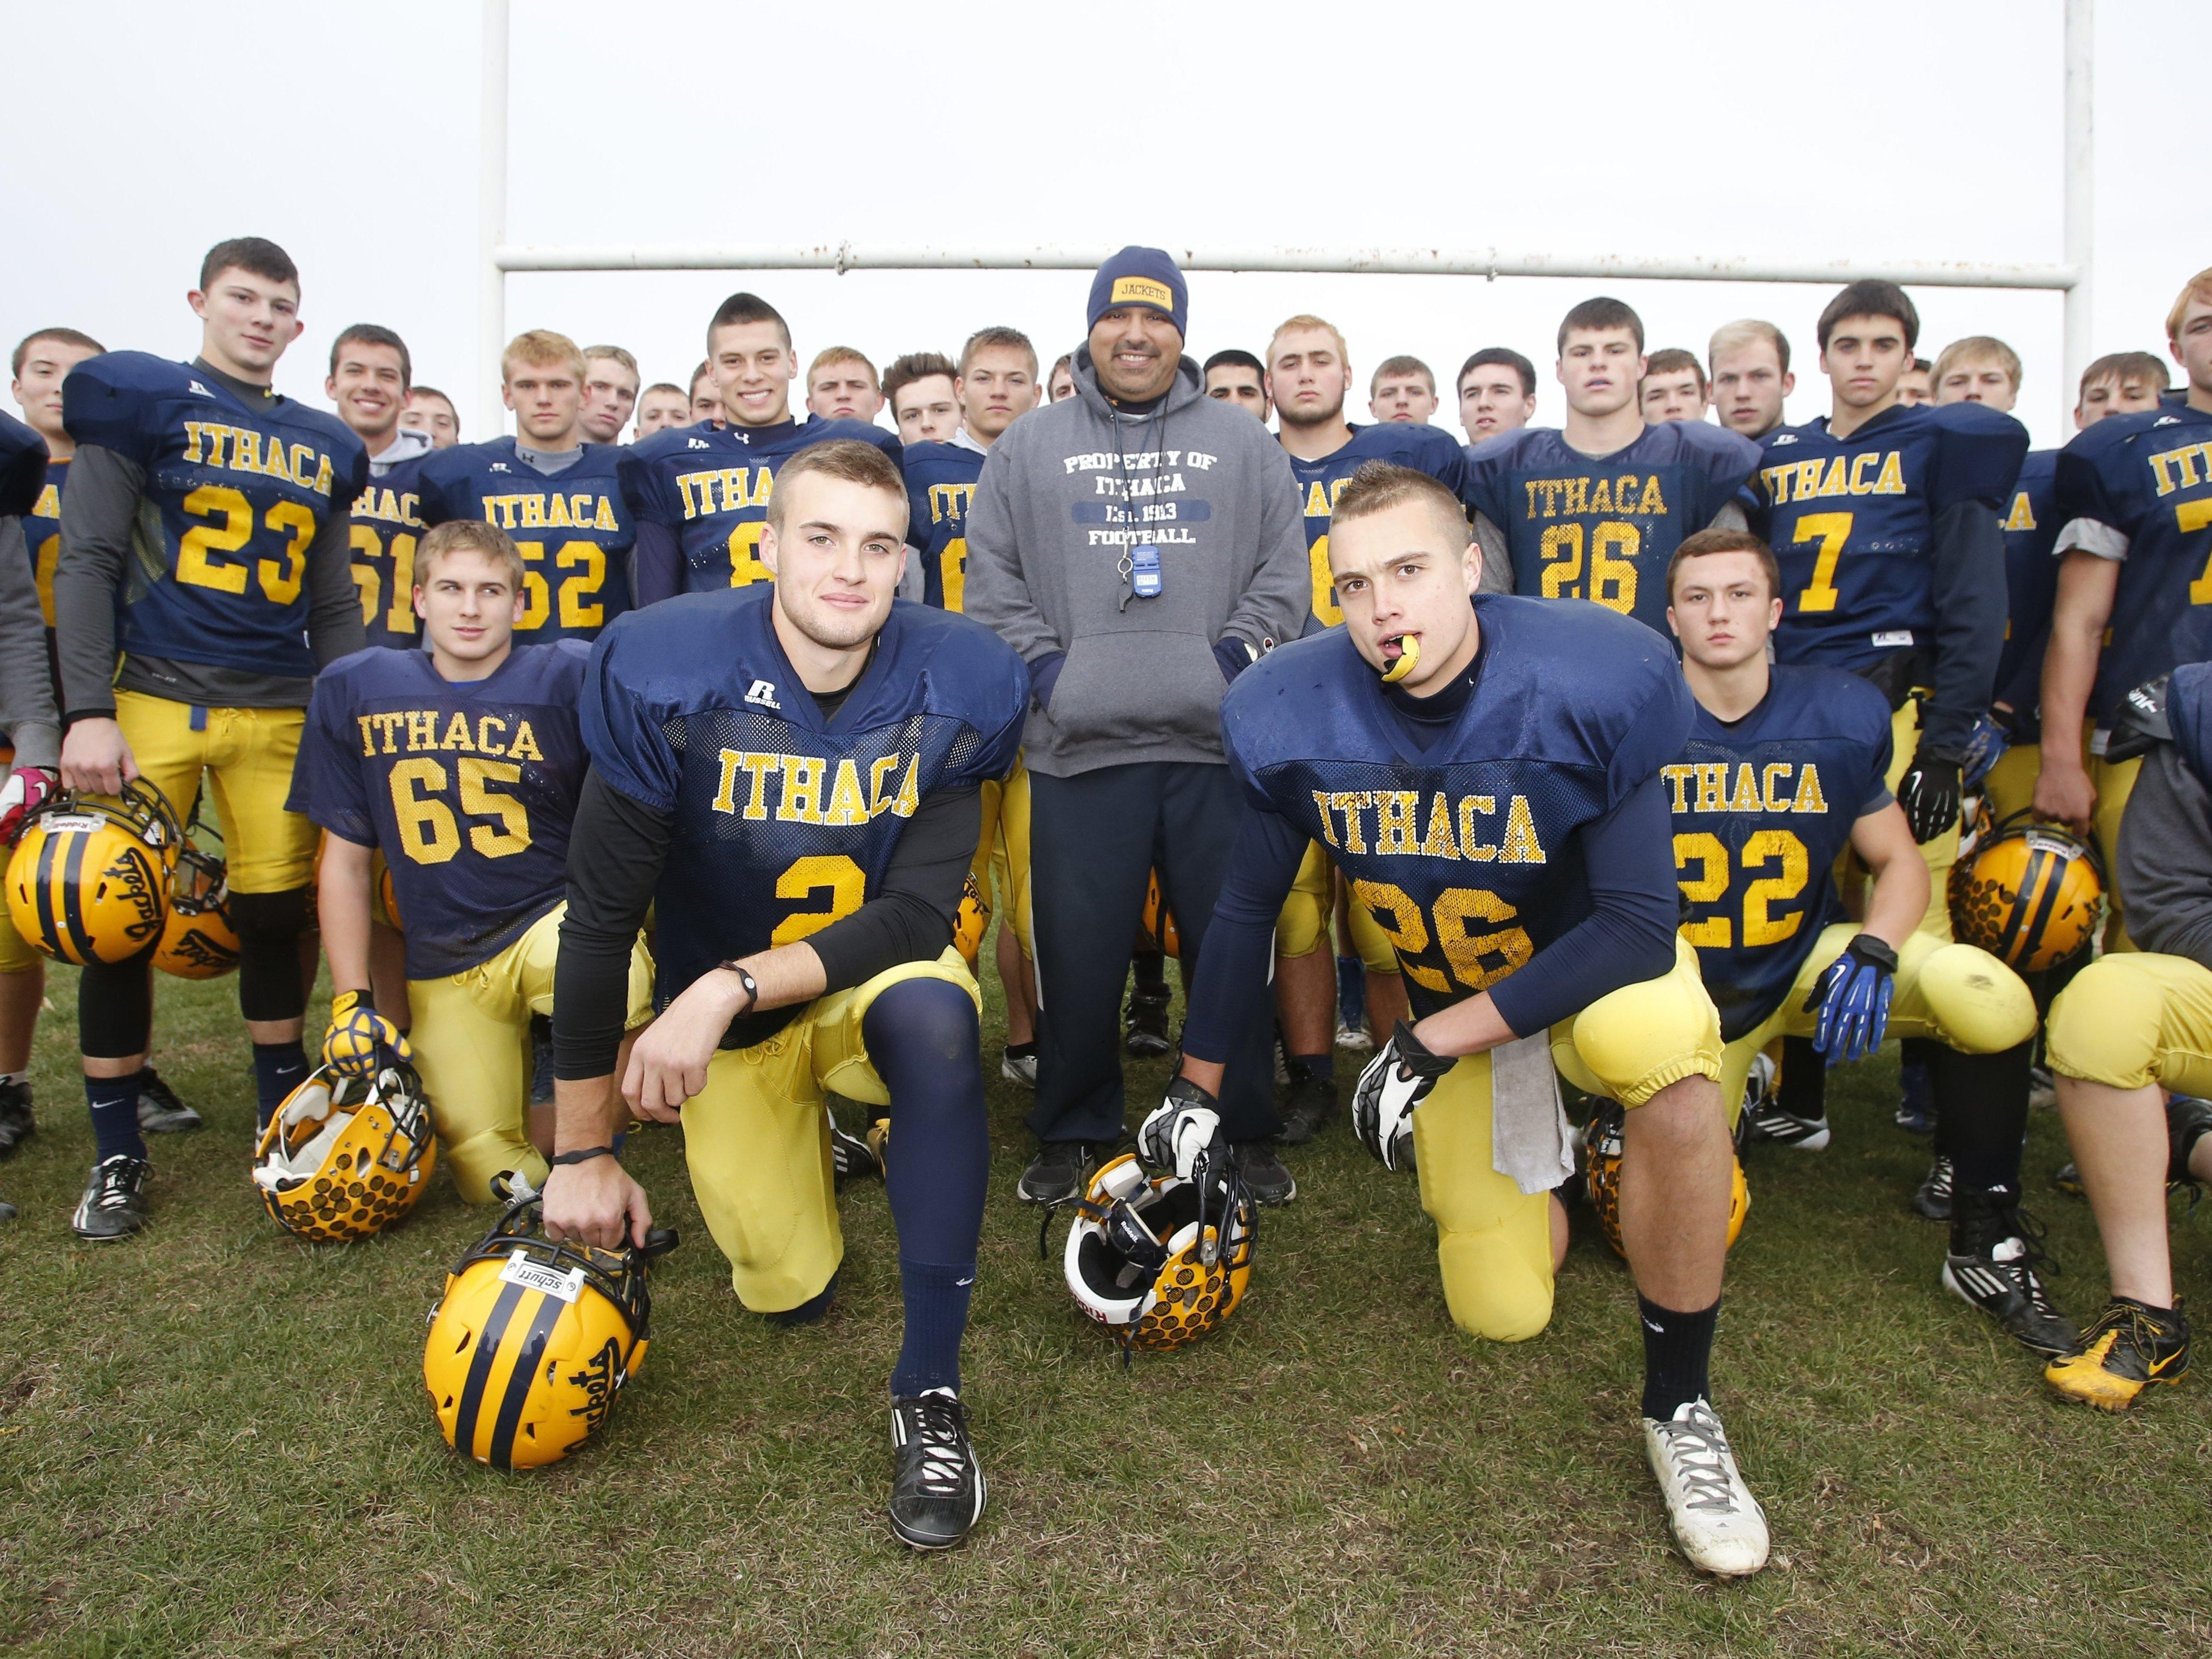 """Ithaca head coach Terry Hessbrook, shown here surrounded by the 2013 Yellowjackets, is the star of the documentary, """"Ithaca: The Climb."""""""